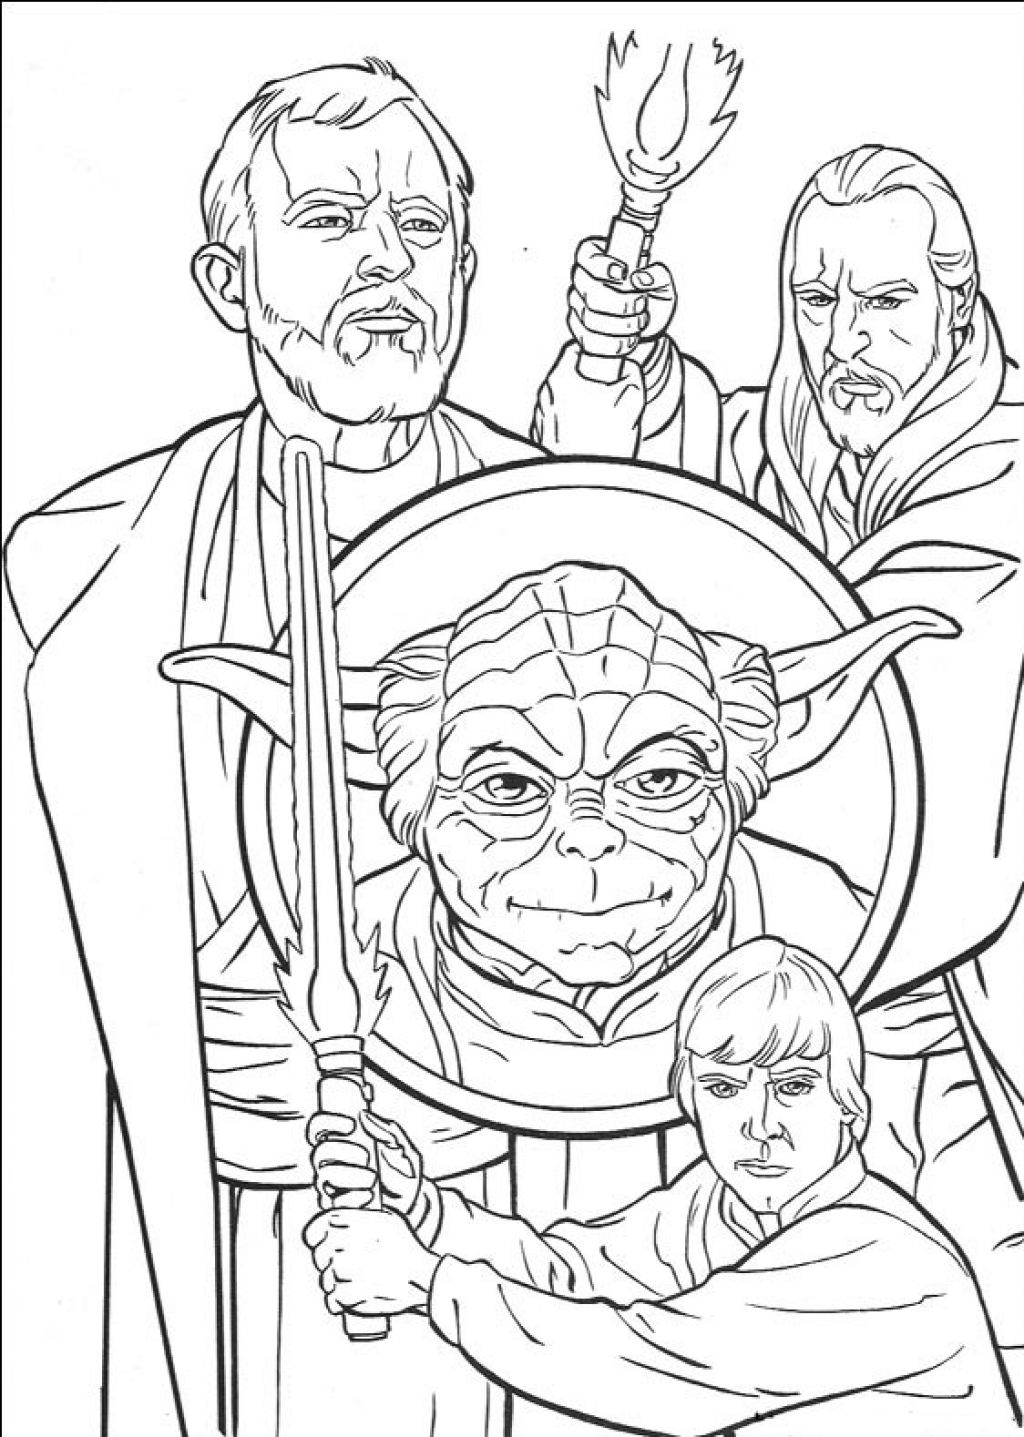 Coloring Pages Star Wars Free Printable Download Of Coloring Pages Of Star Wars Free Coloring Pages Star Wars Printable